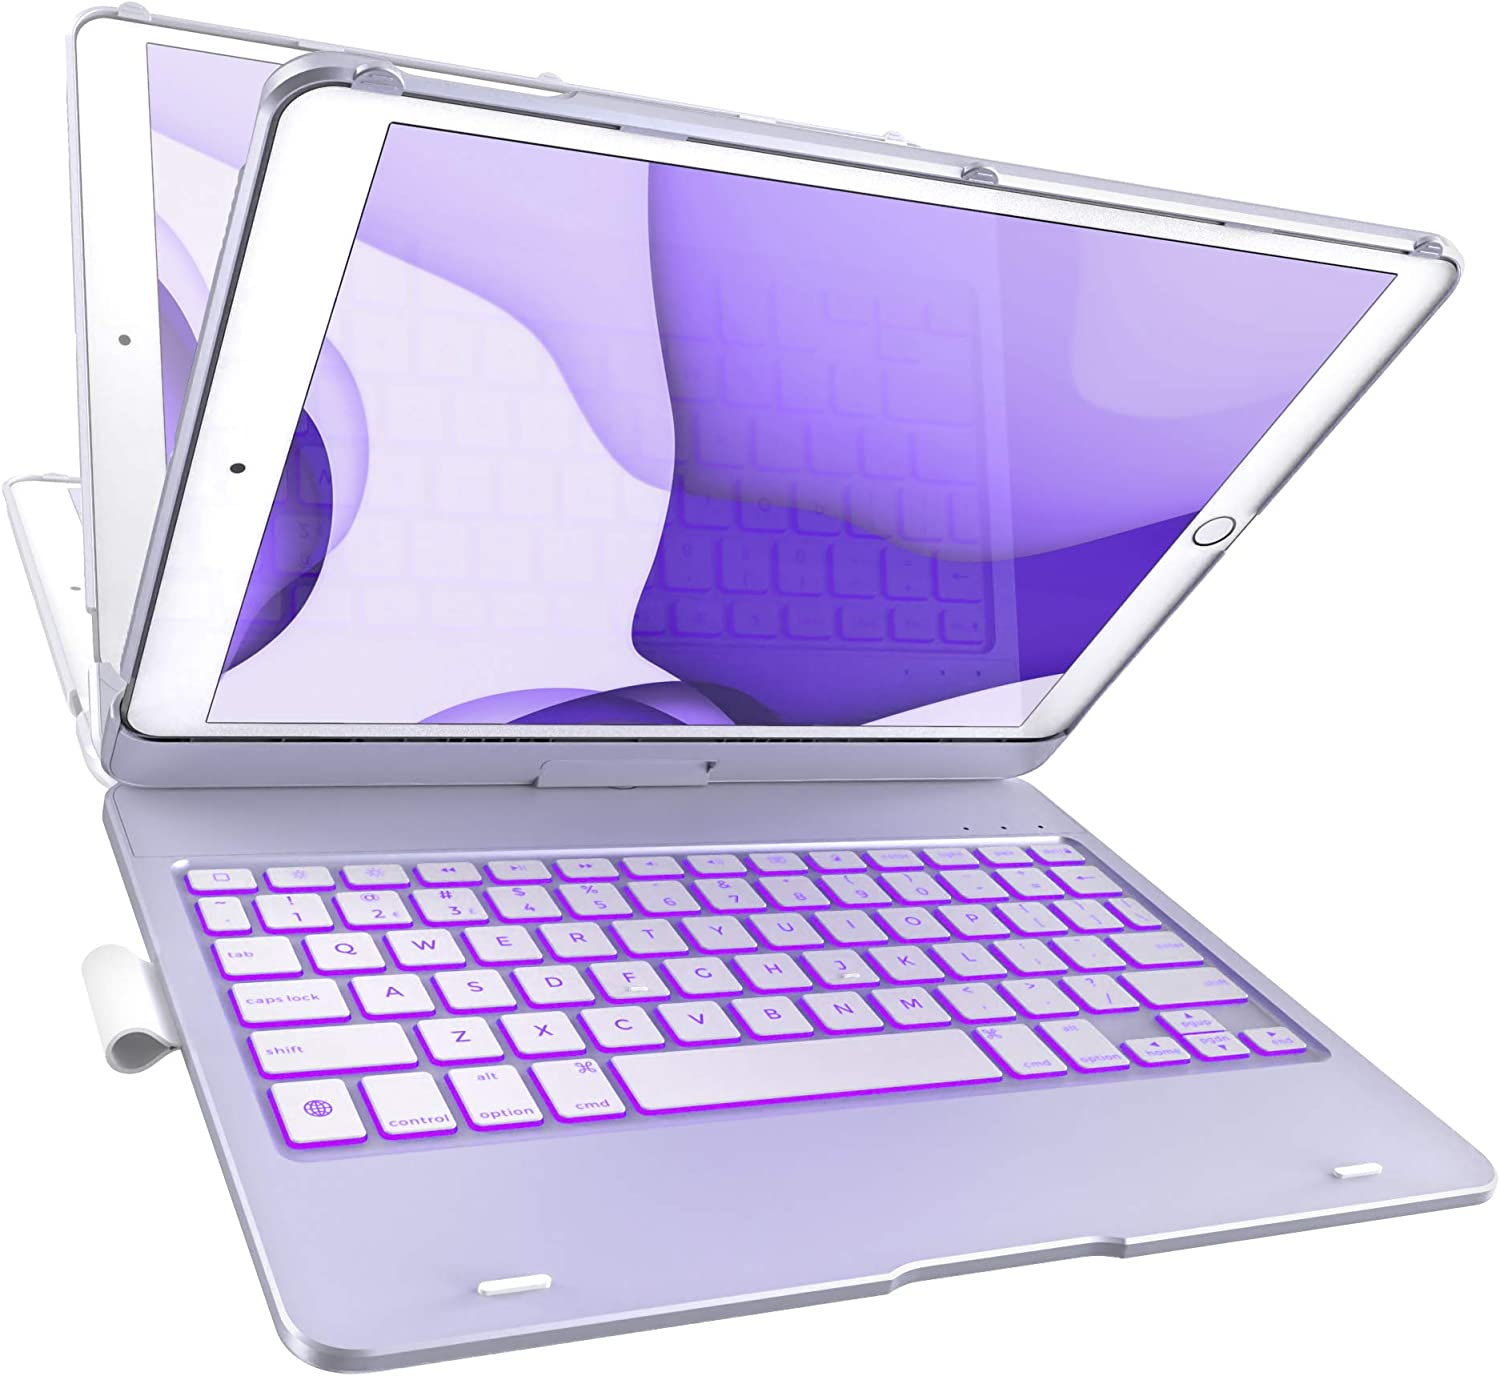 iPad 8th Gen (10.2-inch, 2020) Keyboard Case - 7th Gen, Air 3, Pro 10.5 Compatible - 10 Color Backlight, 7 Modes/360° Rotatable, Slim Protective Cover with Apple Pencil Holder (Purple)